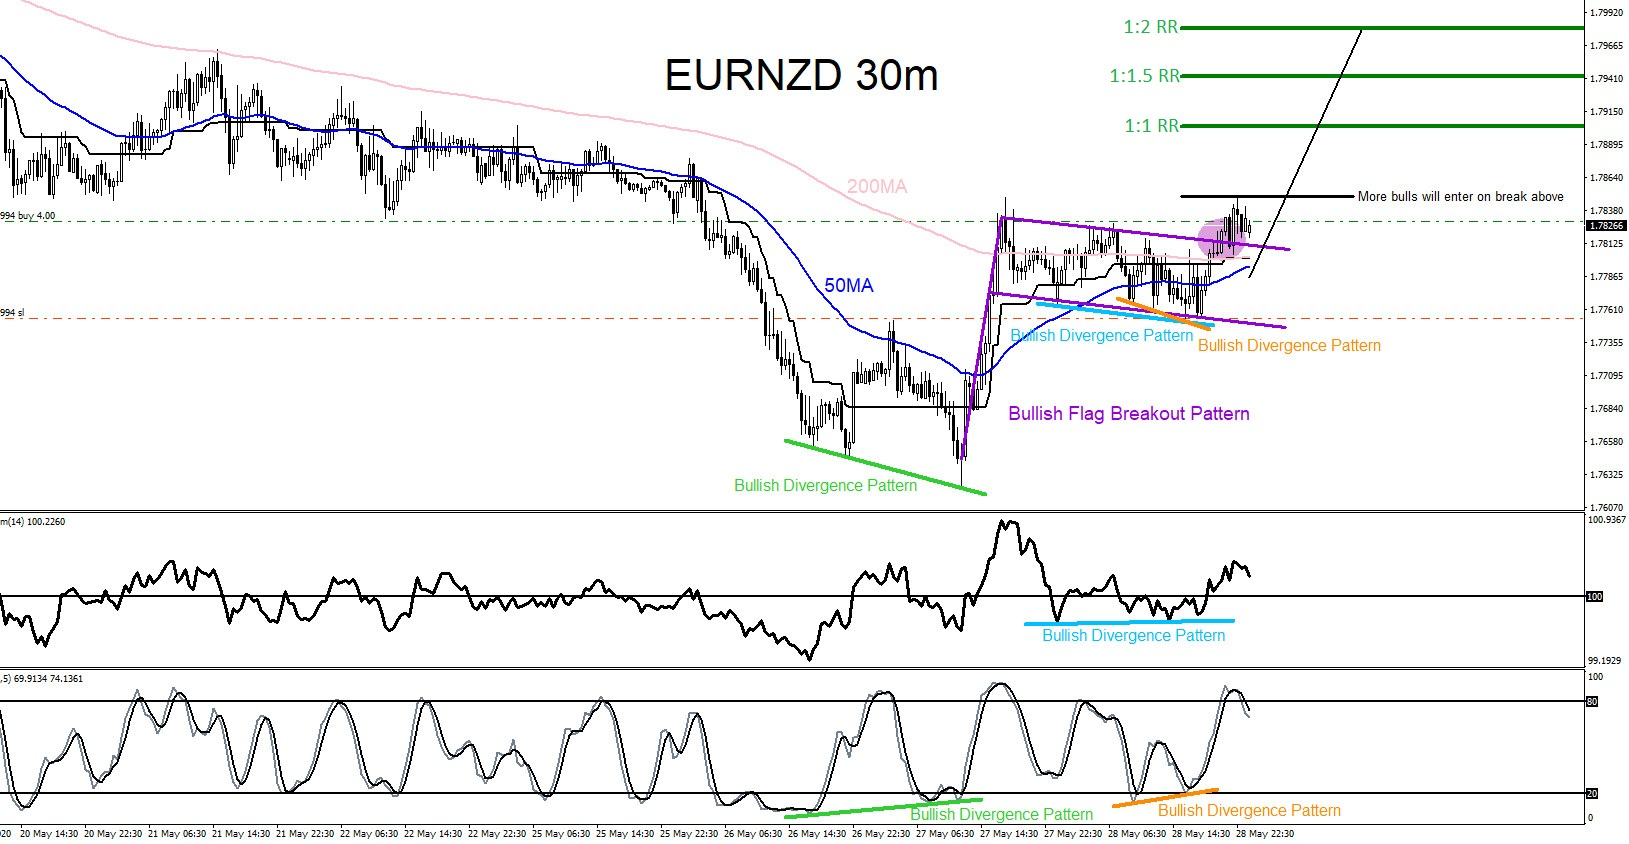 EURNZD : Catching the Move Higher